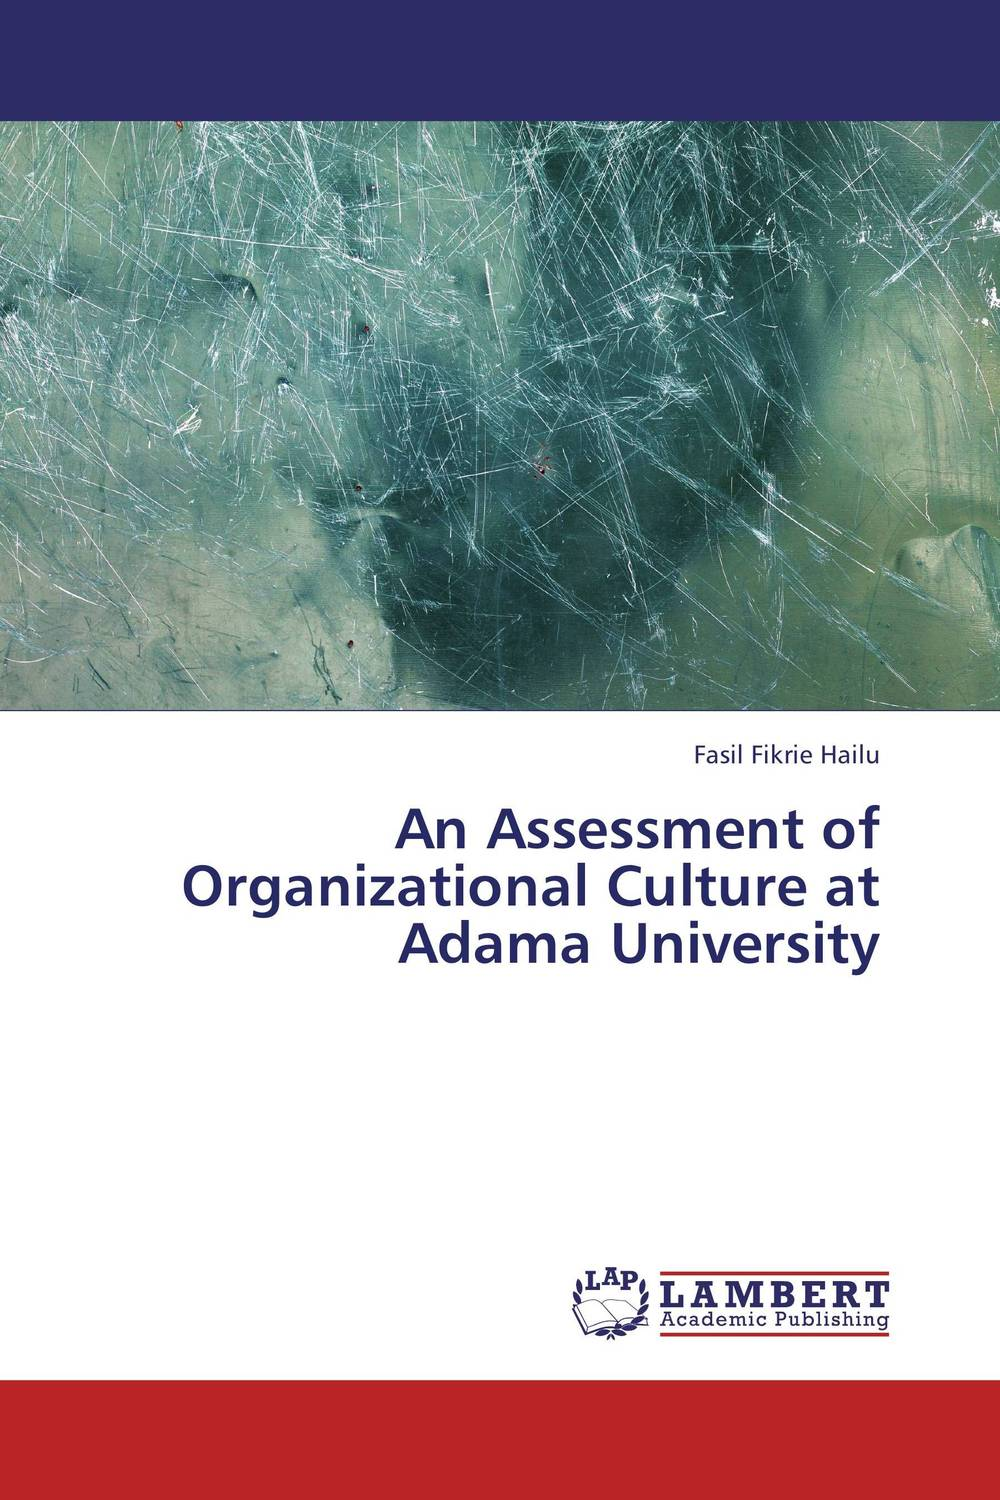 An Assessment of Organizational Culture at Adama University peter schein organizational culture and leadership